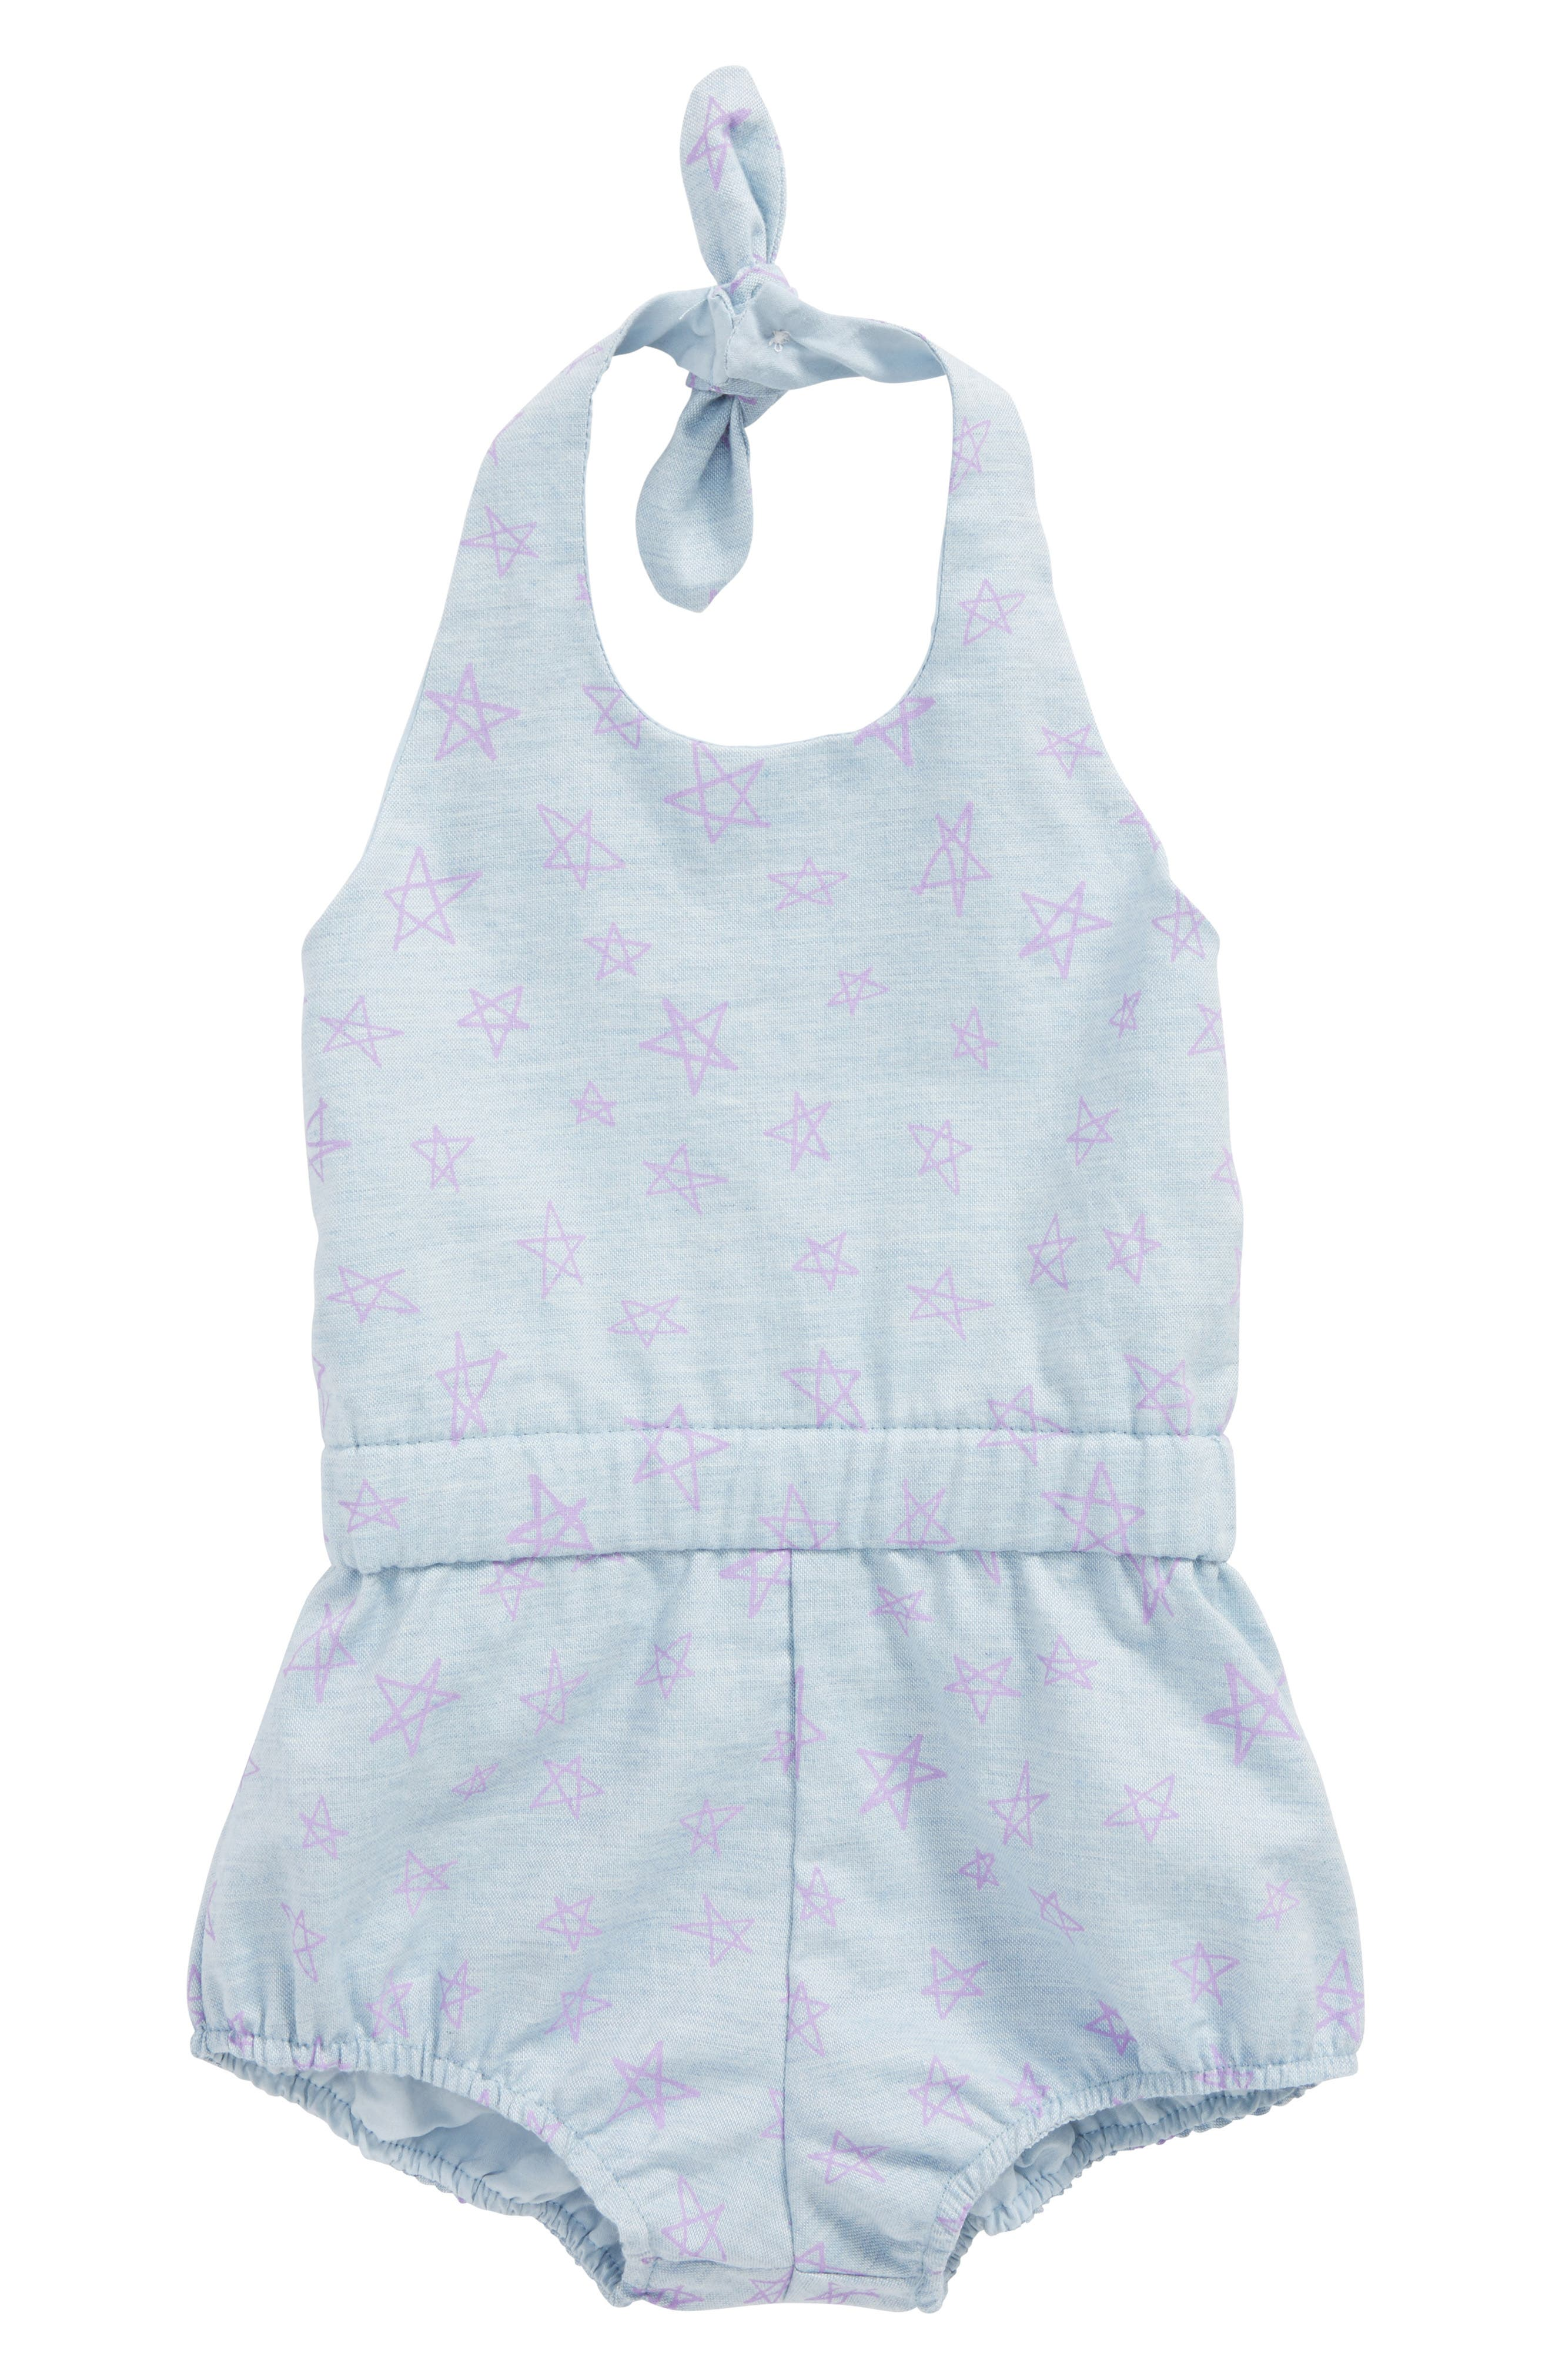 Layla Star Chambray Romper,                             Main thumbnail 1, color,                             Chambray With Purple Stars